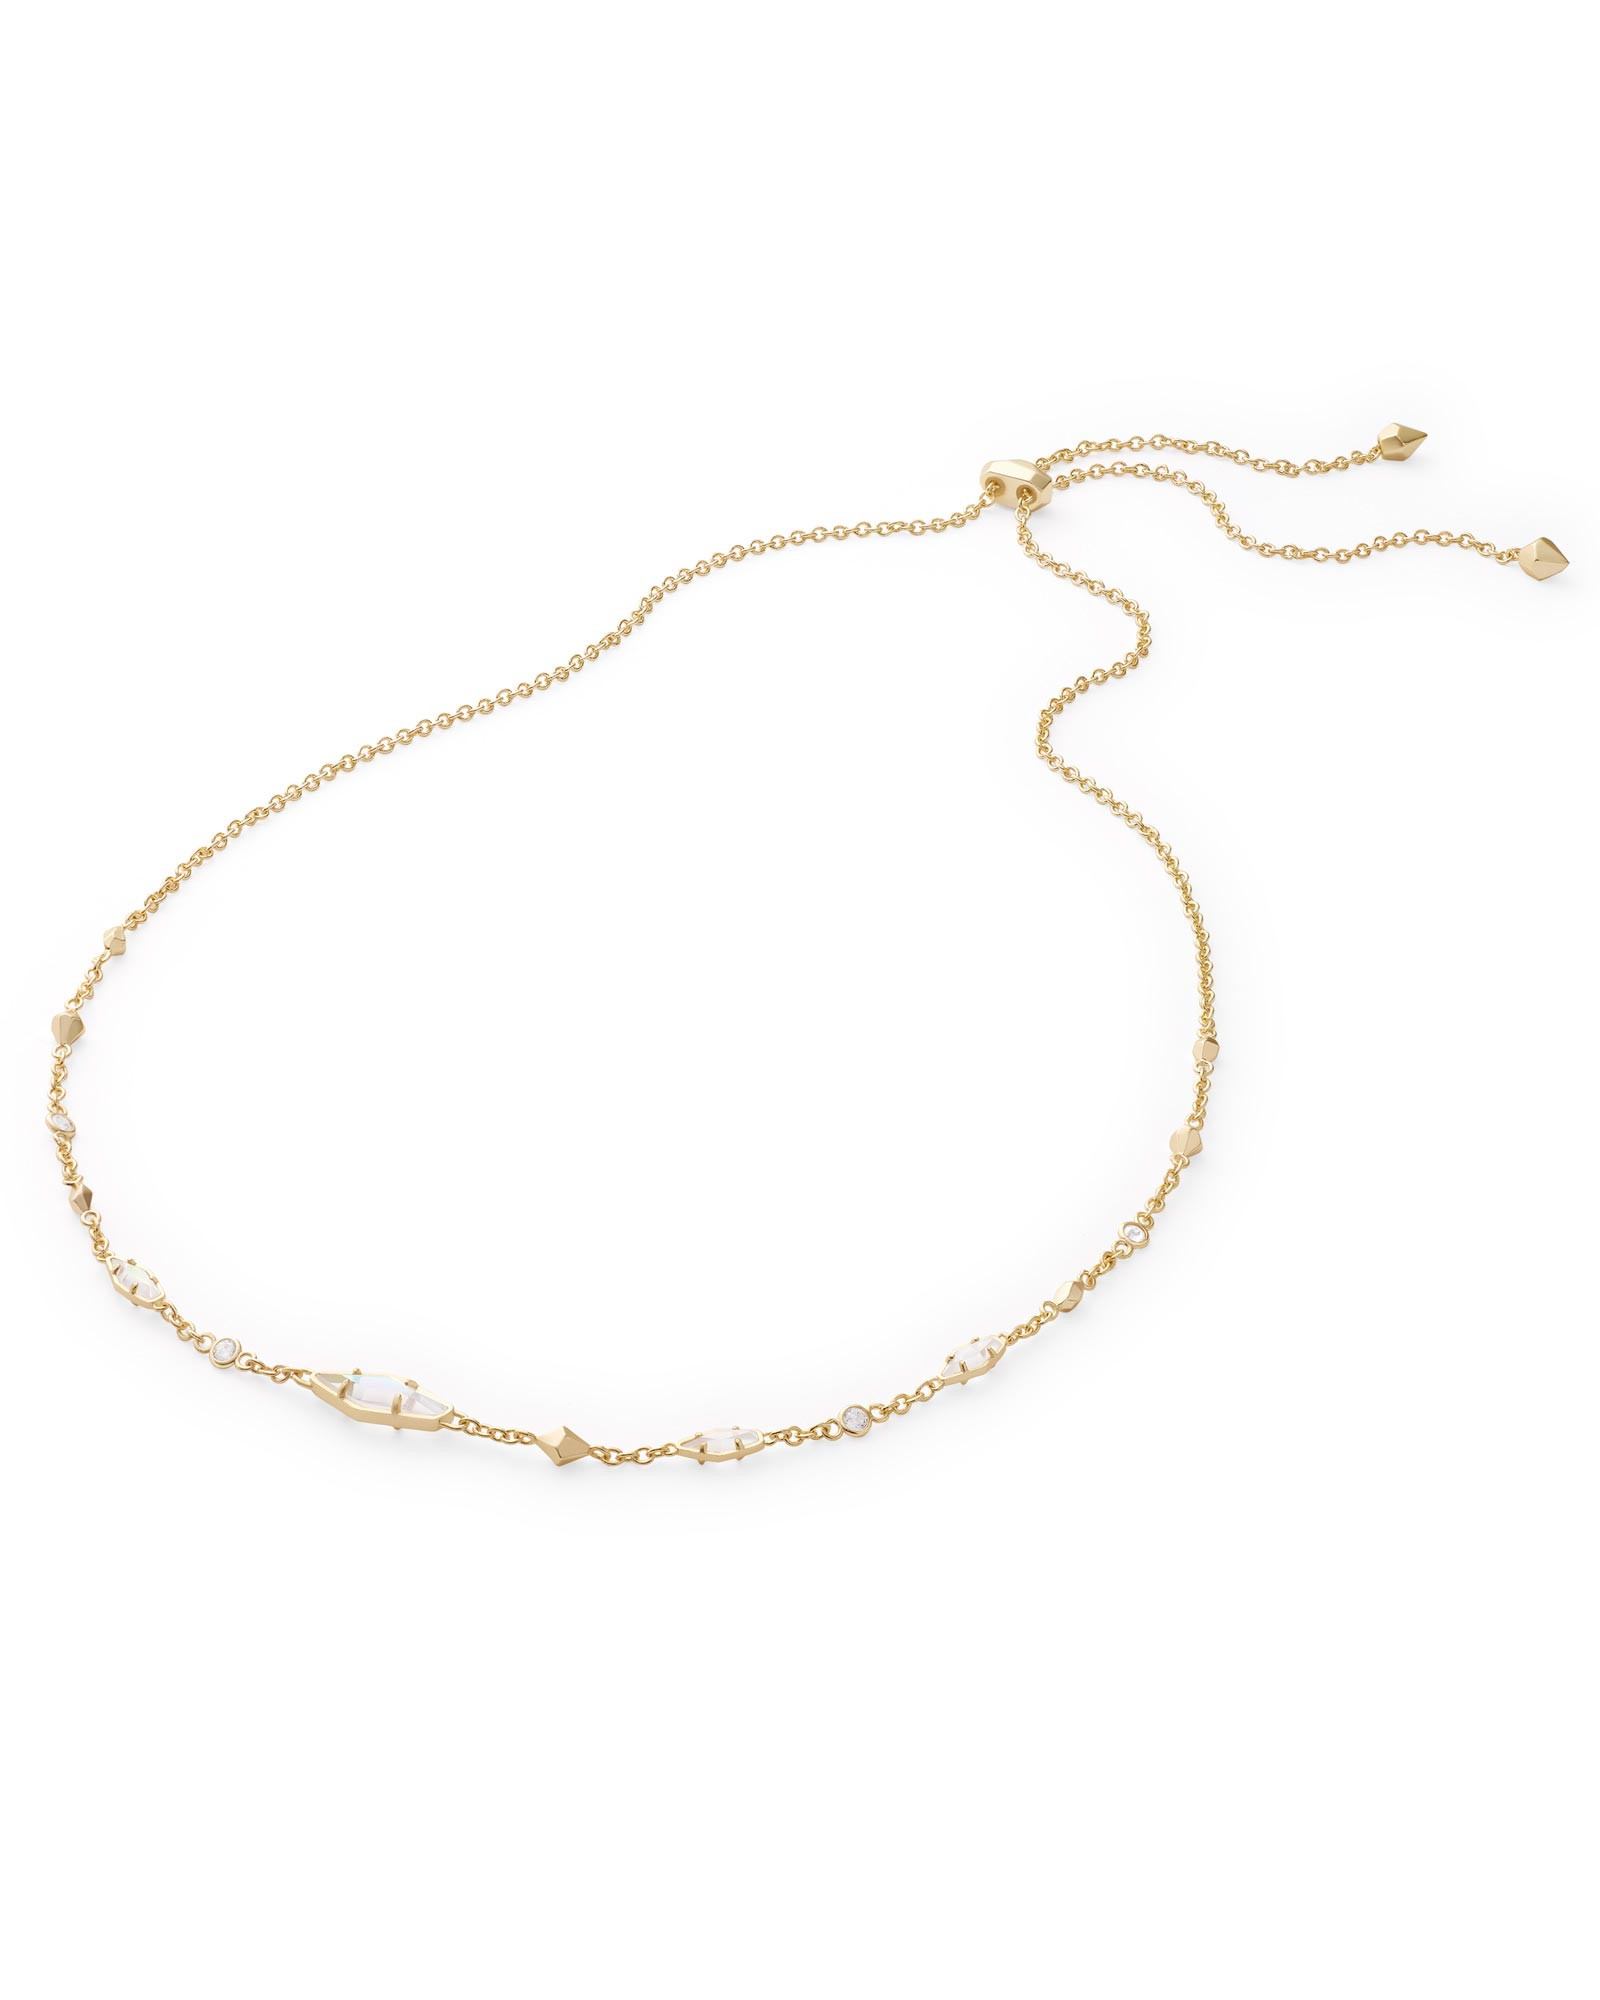 Debra Choker Necklace in Gold